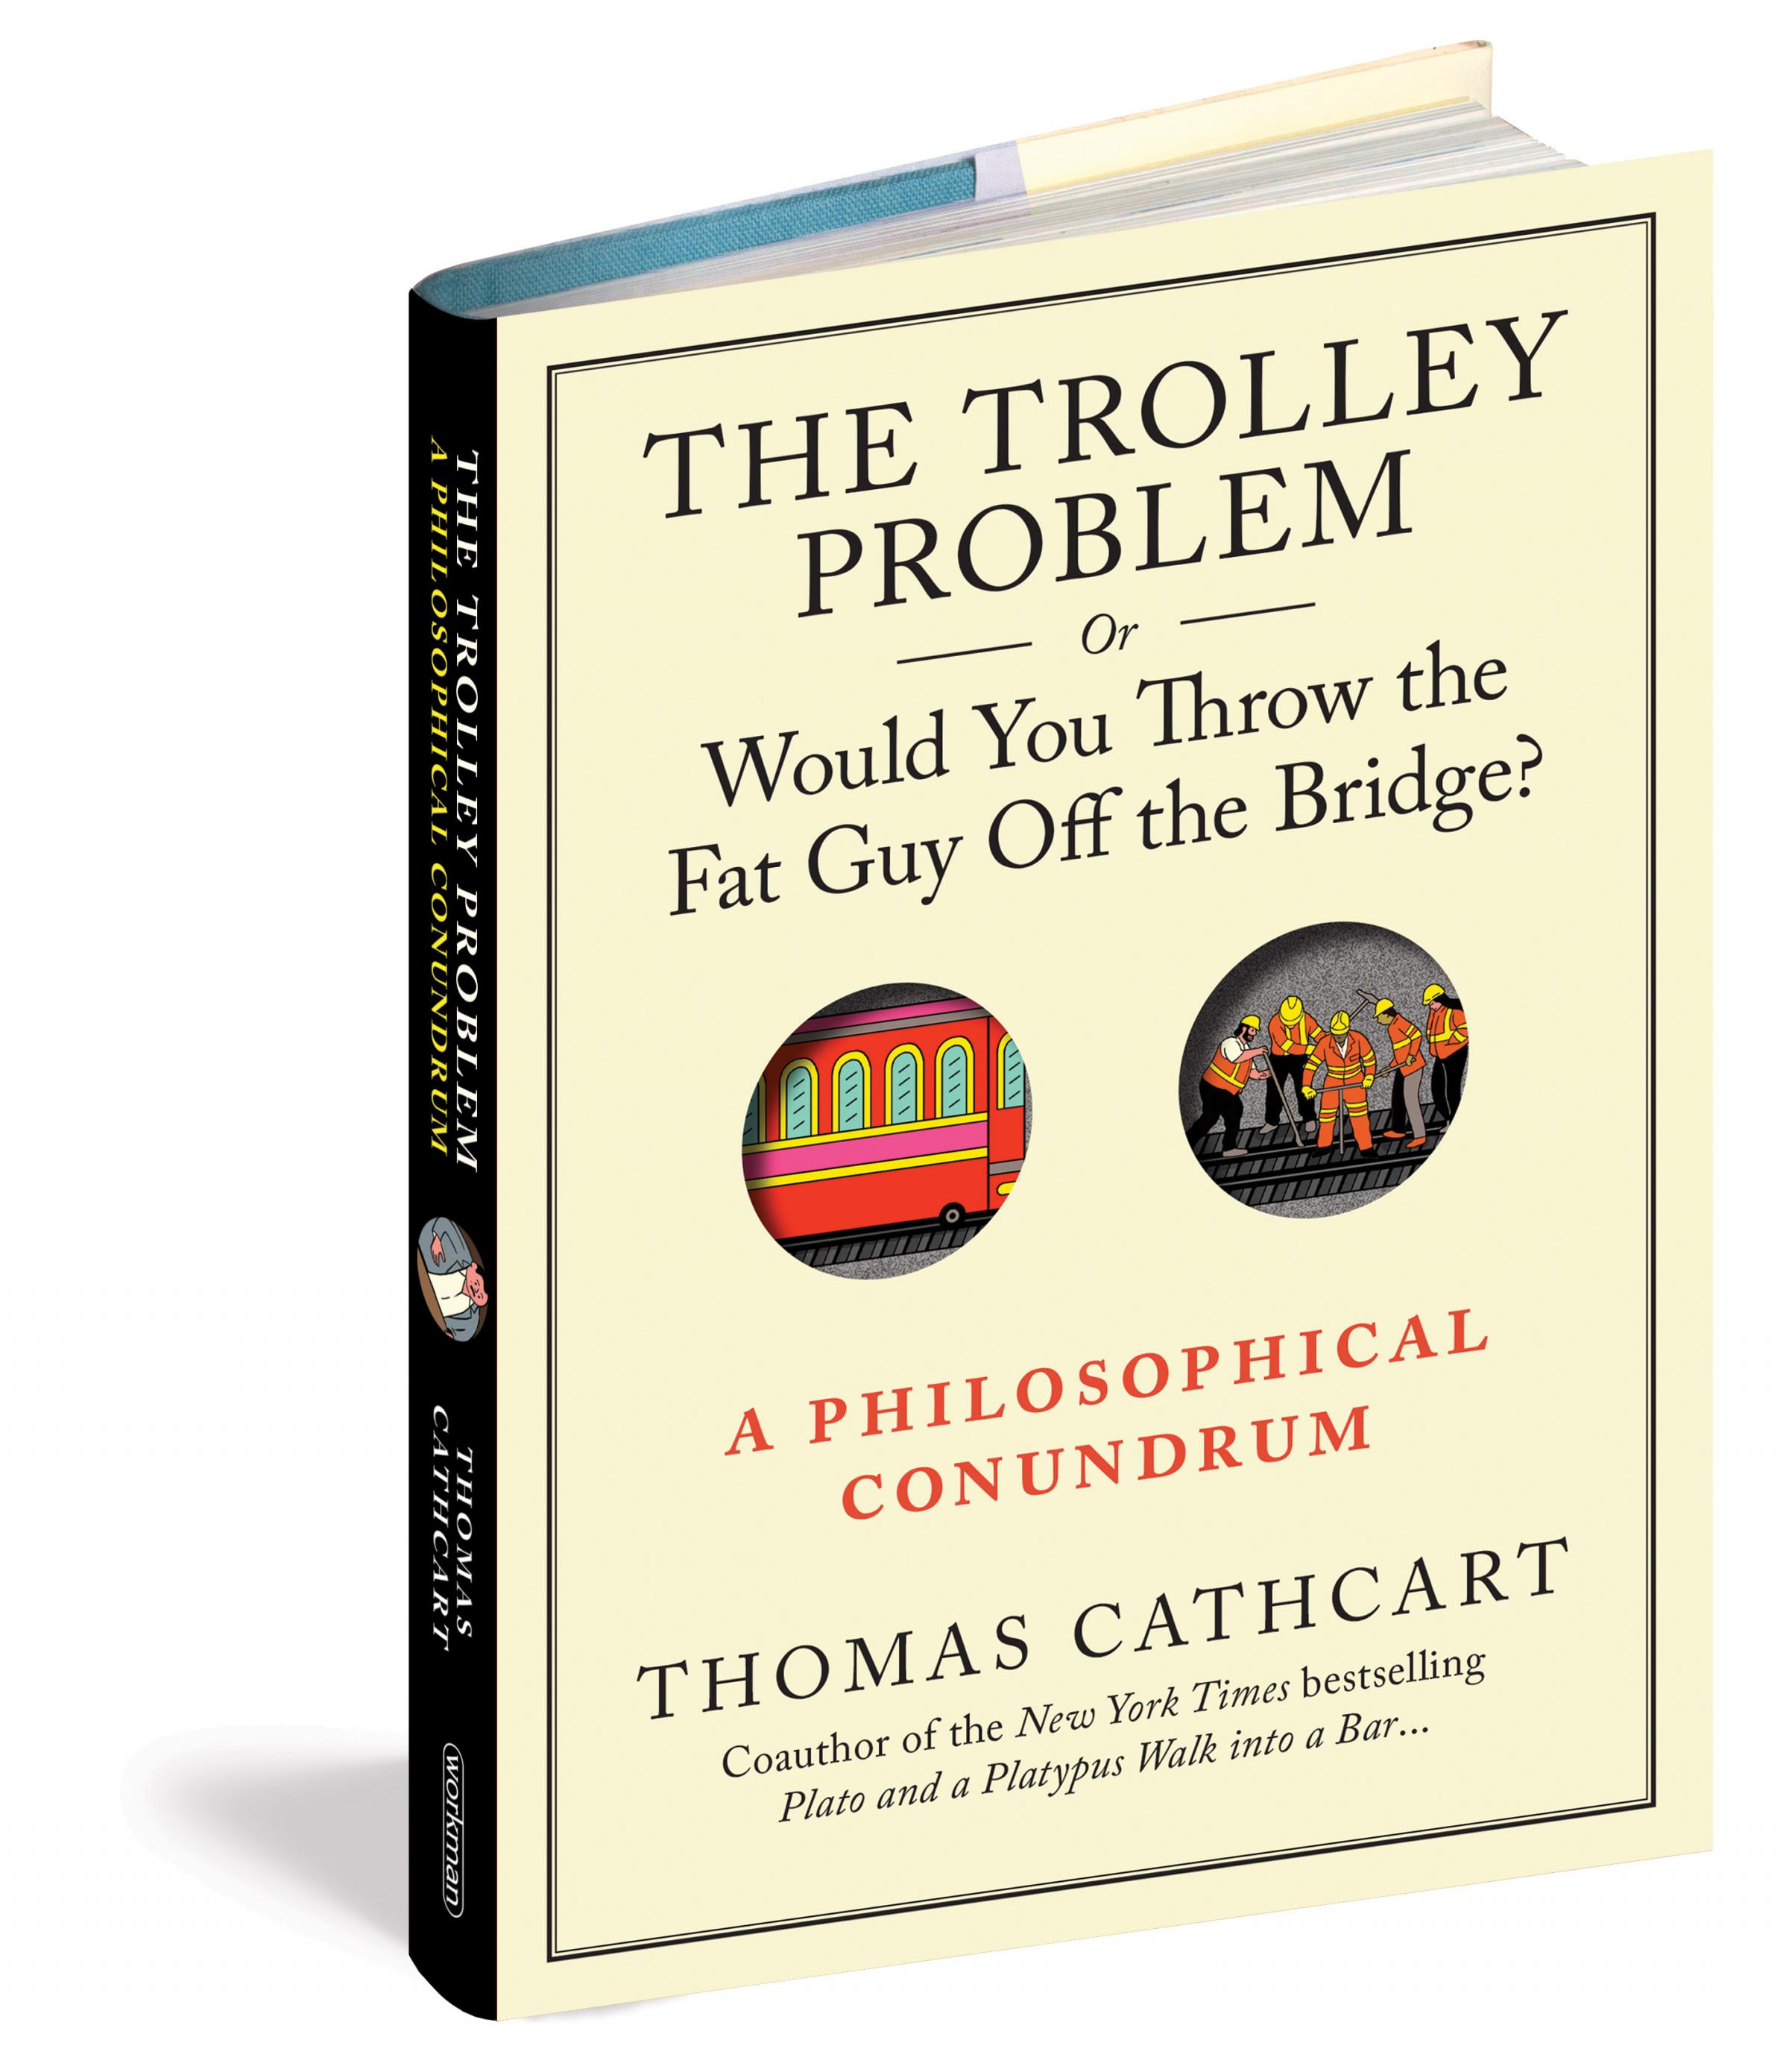 A Philosophical Conundrum The Trolley Problem Or Would